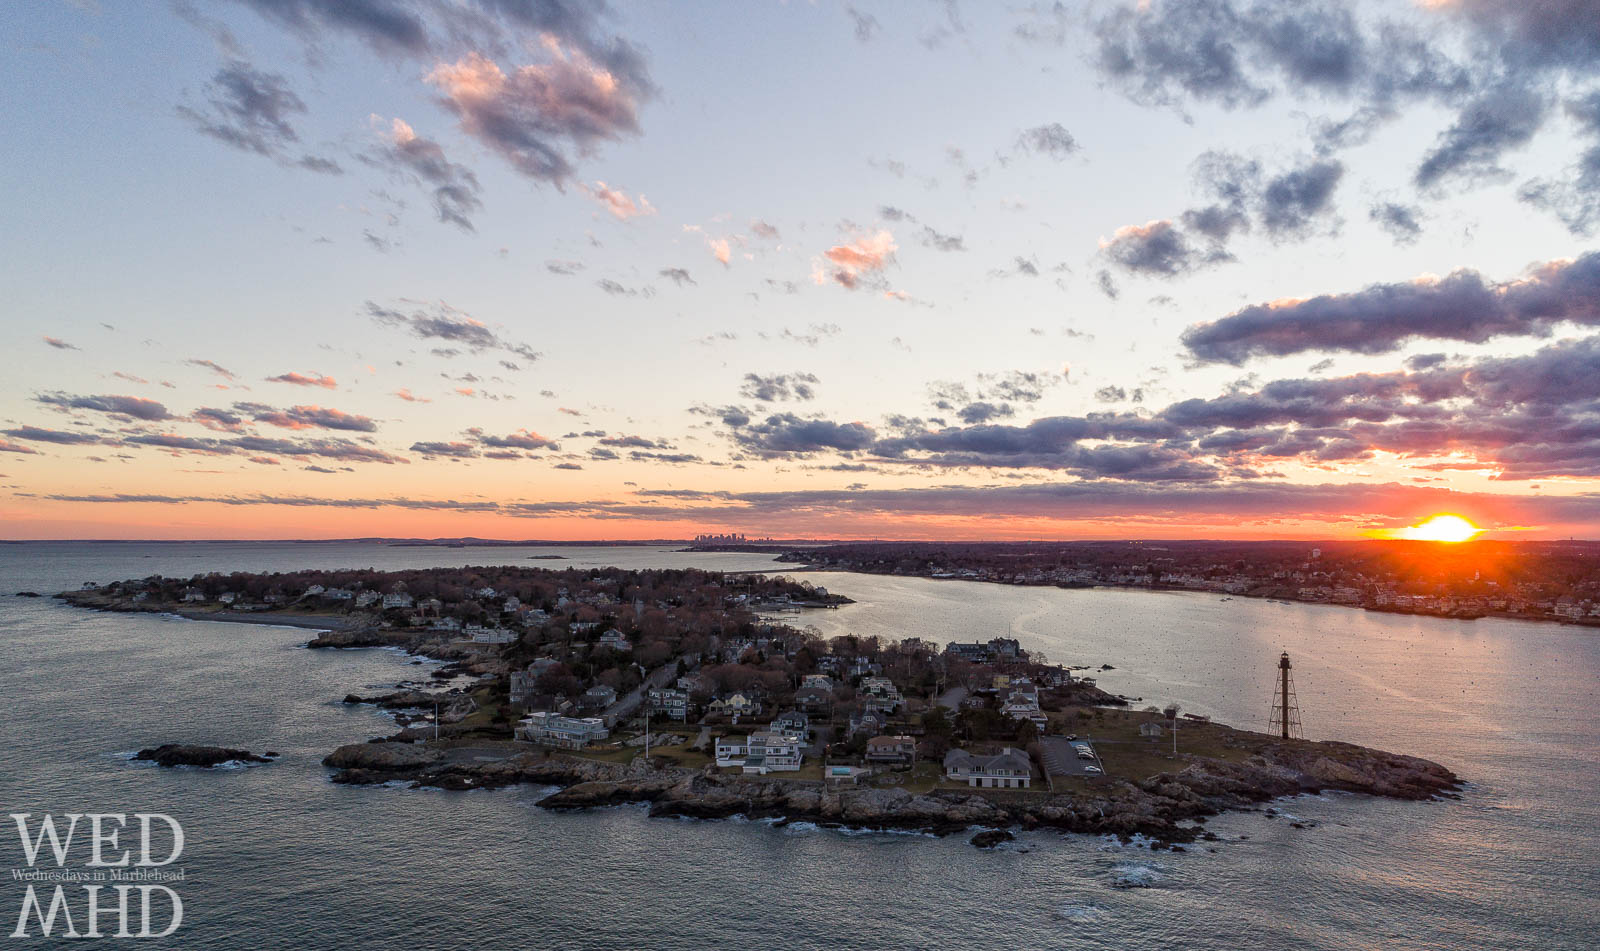 Sunset's last light on Marblehead Neck is captured from 300 feet over Chandler Hovey Park with the Boston Skyline visible in the distance